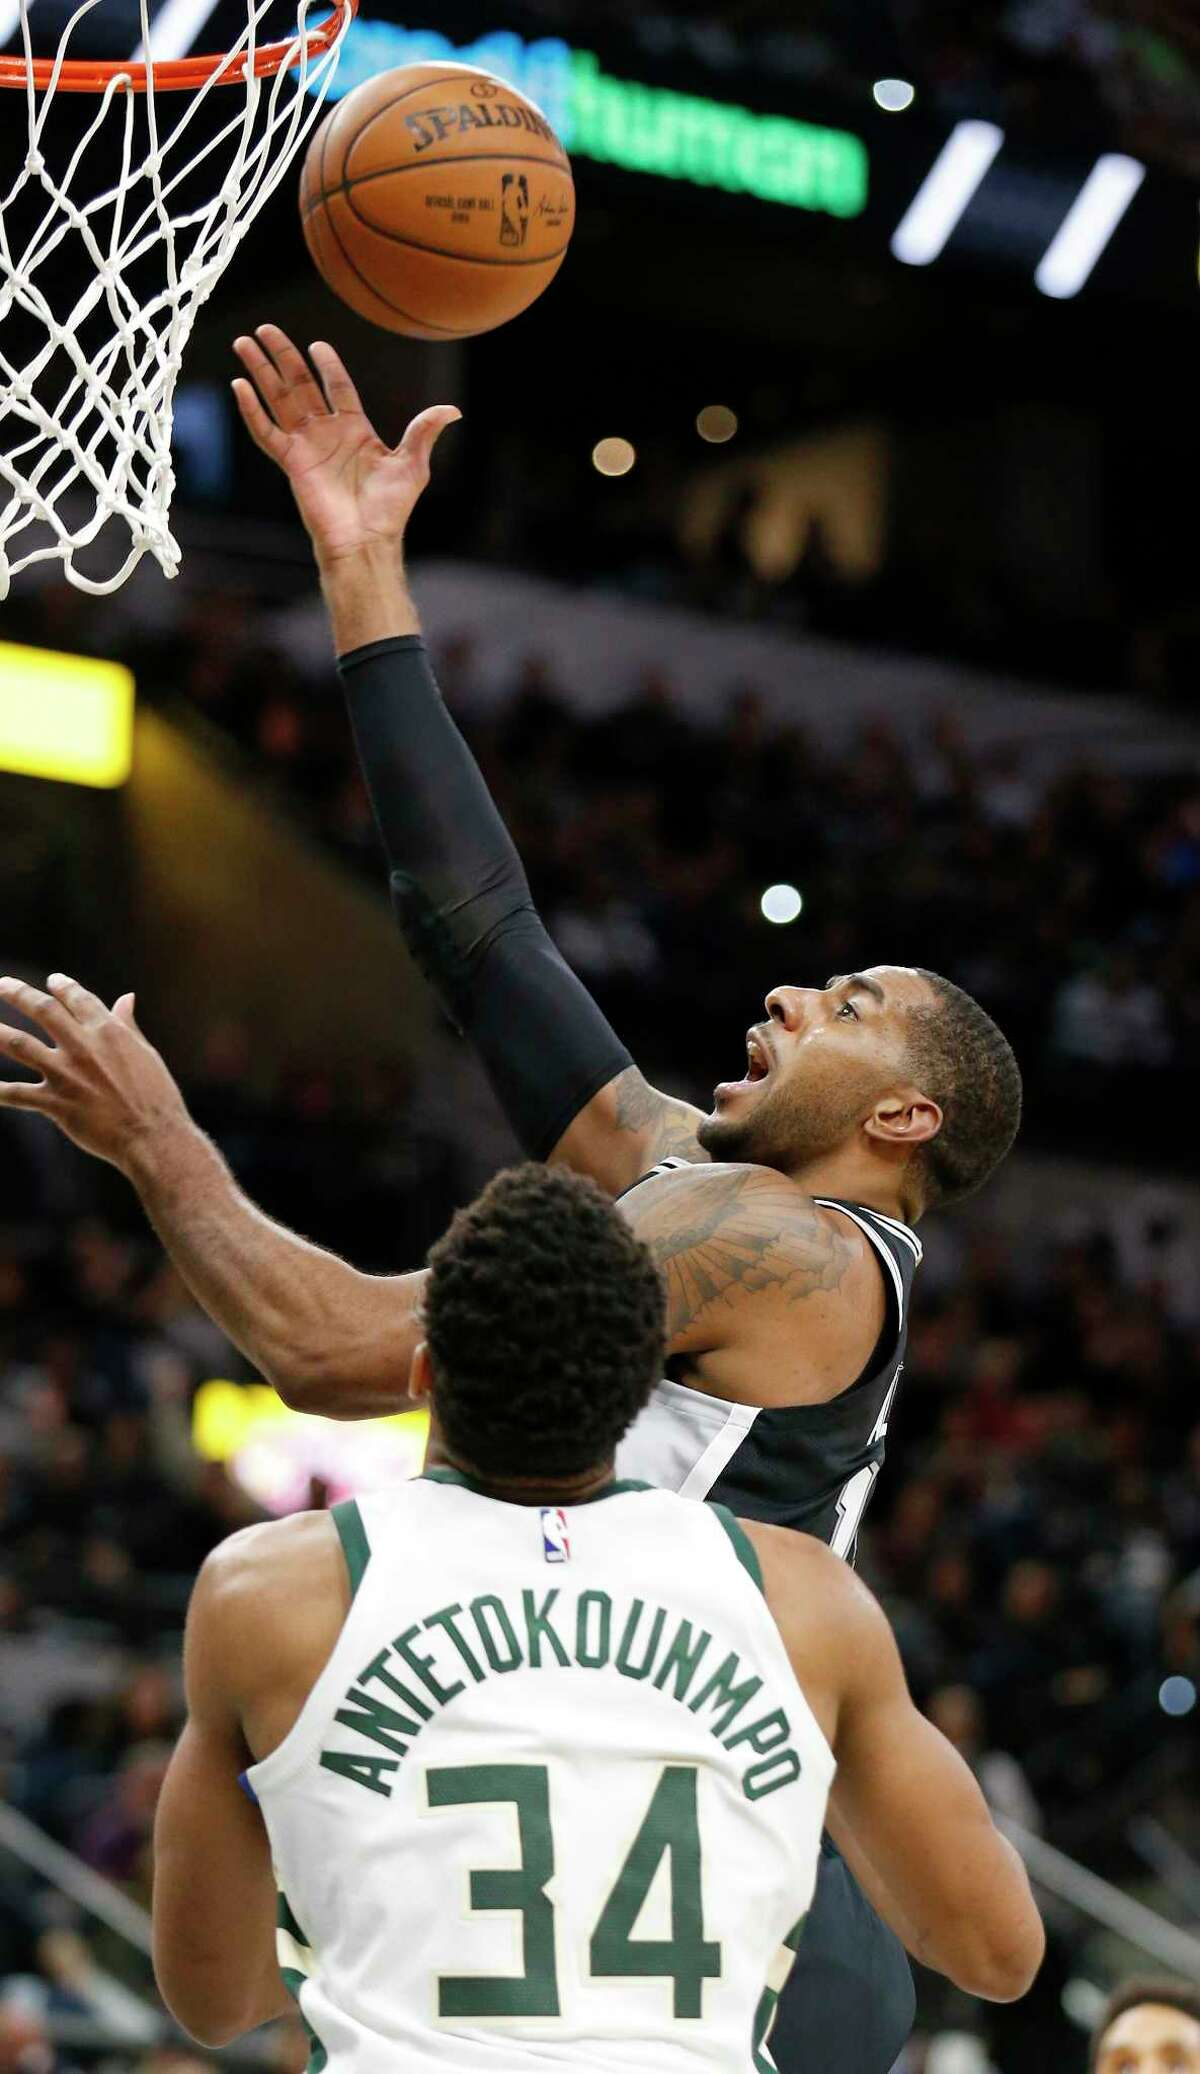 San Antonio Spurs' LaMarcus Aldridge shoots around Milwaukee Bucks Giannis Antetokounmpo during first half action Friday Nov. 10, 2017 at the AT&T Center.